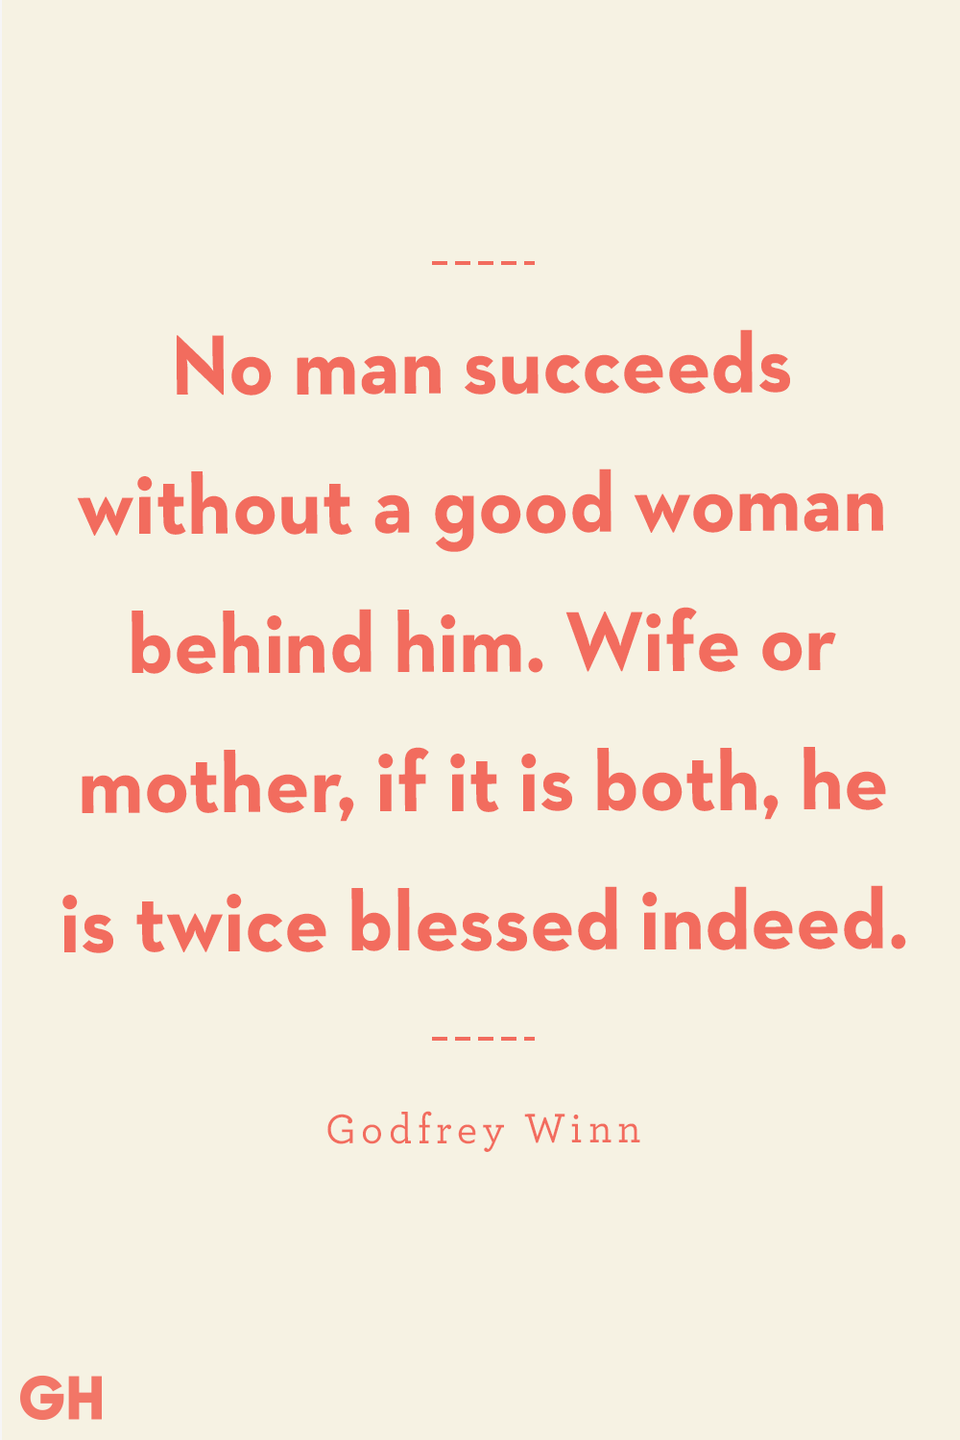 """<p>No man succeeds without a good woman behind him. Wife or mother, if it is both, he is twice blessed indeed.</p><p><strong>RELATED:</strong> <a href=""""https://www.goodhousekeeping.com/holidays/mothers-day/g20064142/funny-mom-quotes/"""" rel=""""nofollow noopener"""" target=""""_blank"""" data-ylk=""""slk:Funny Mom Quotes Courtesy of Your the Most Hilarious Celebrities"""" class=""""link rapid-noclick-resp"""">Funny Mom Quotes Courtesy of Your the Most Hilarious Celebrities</a></p>"""